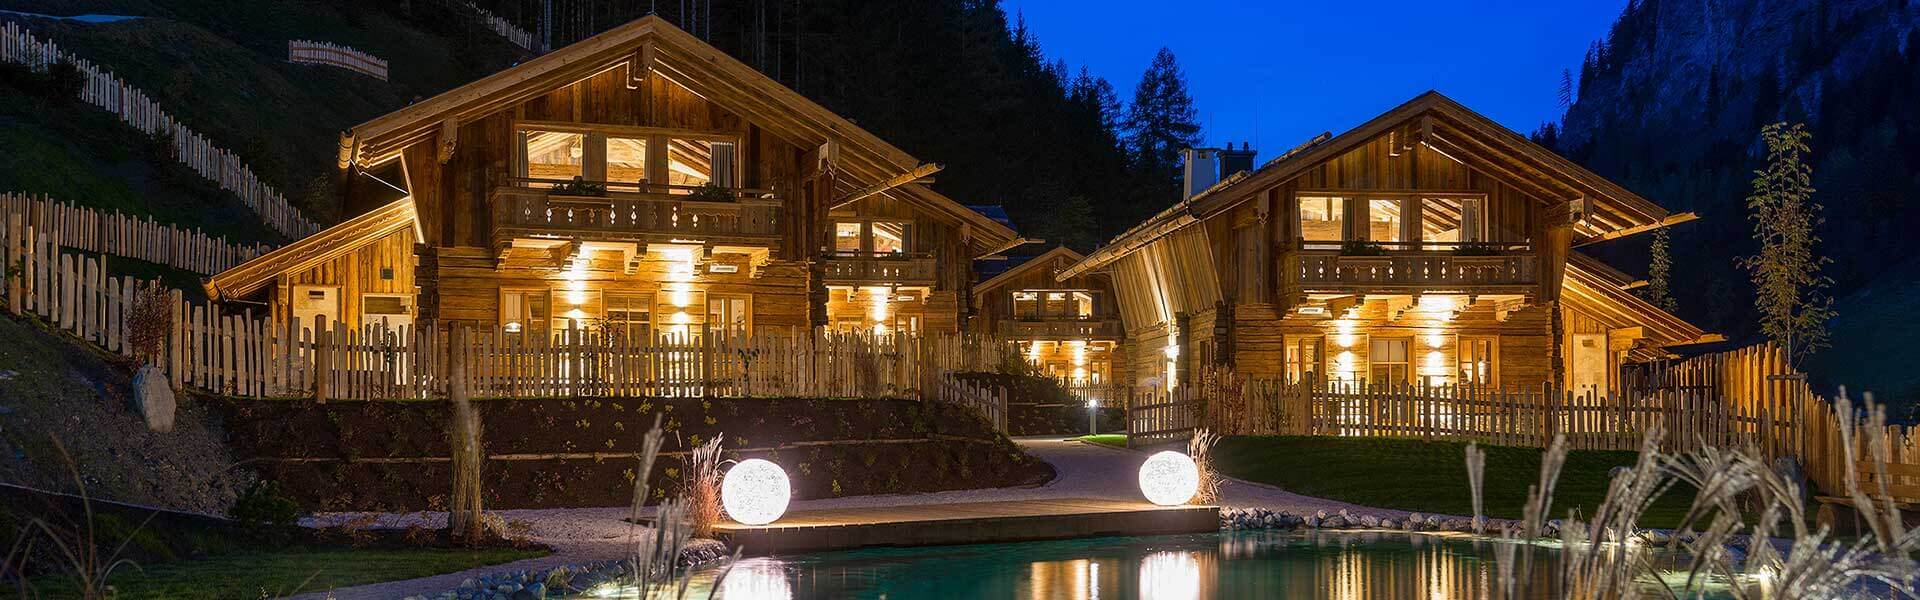 Mountain chalet retreat lit up at night